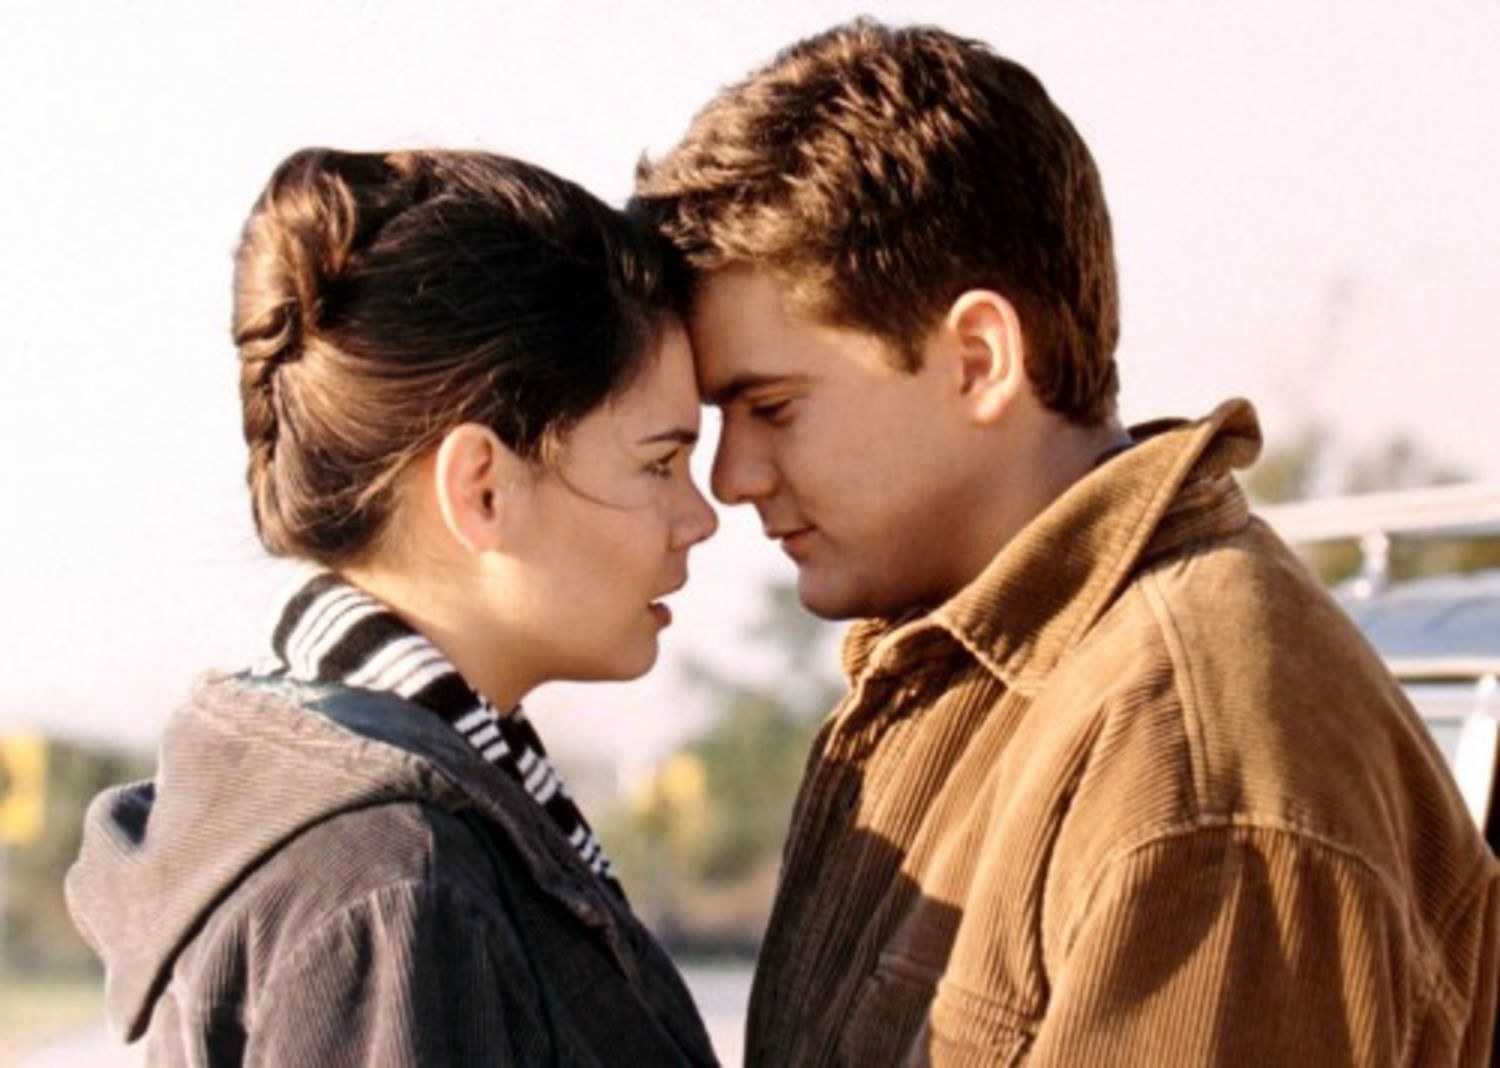 Originally,  Dawson's Creek  was going to  end with Joey choosing Dawson  over Pacey. -  Creator Kevin Williamson began writing the series finale with Joey and Dawson being the endgame, only to change his mind during the process.